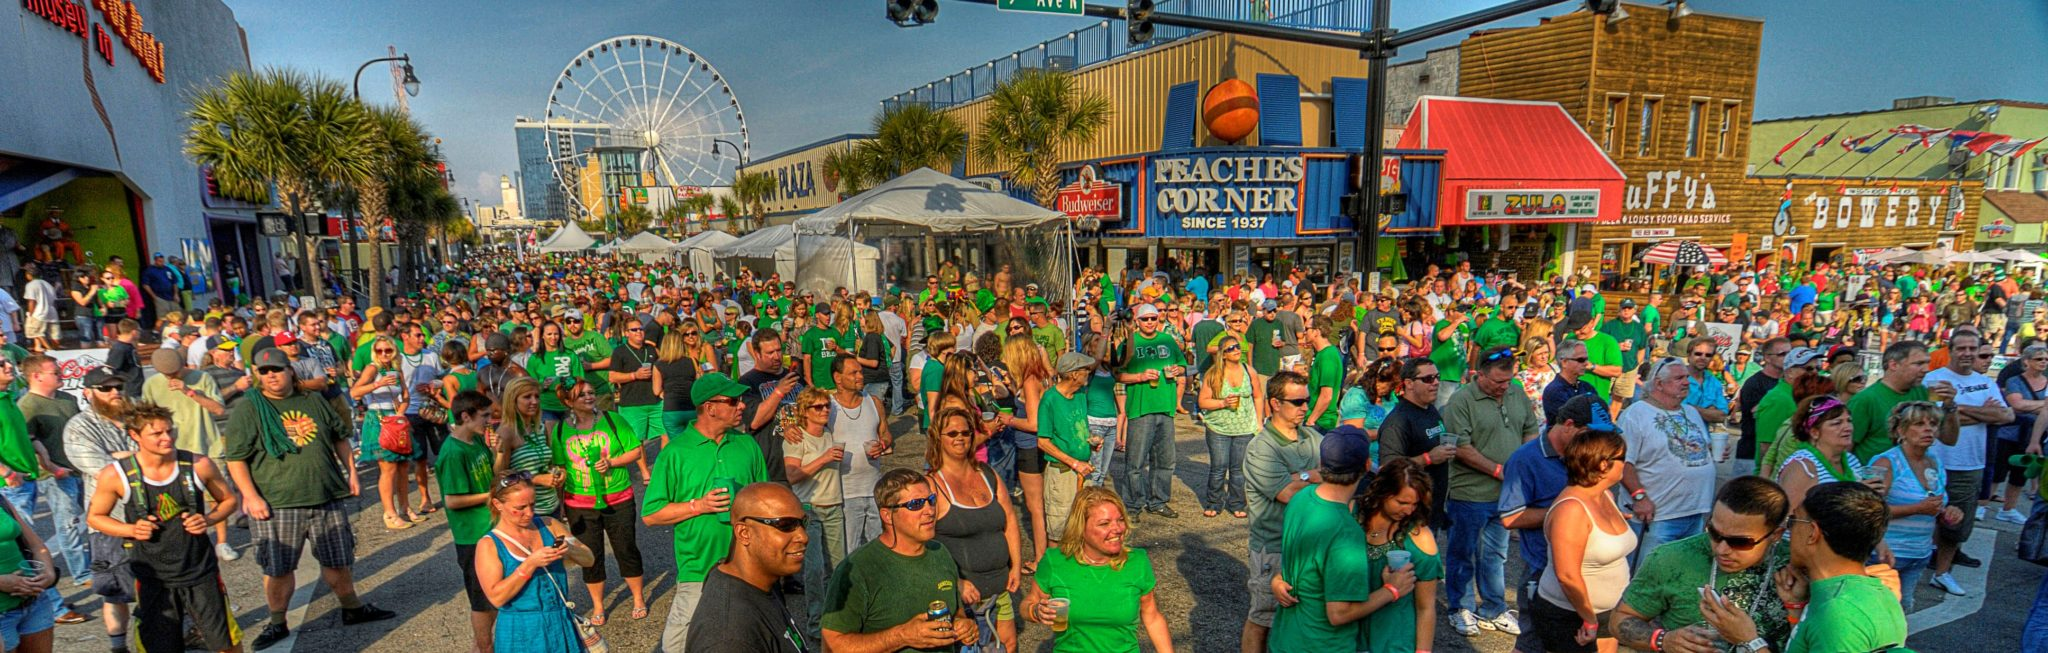 Myrtle Beach 2015 The Year In Pictures Myrtle Beach Sc